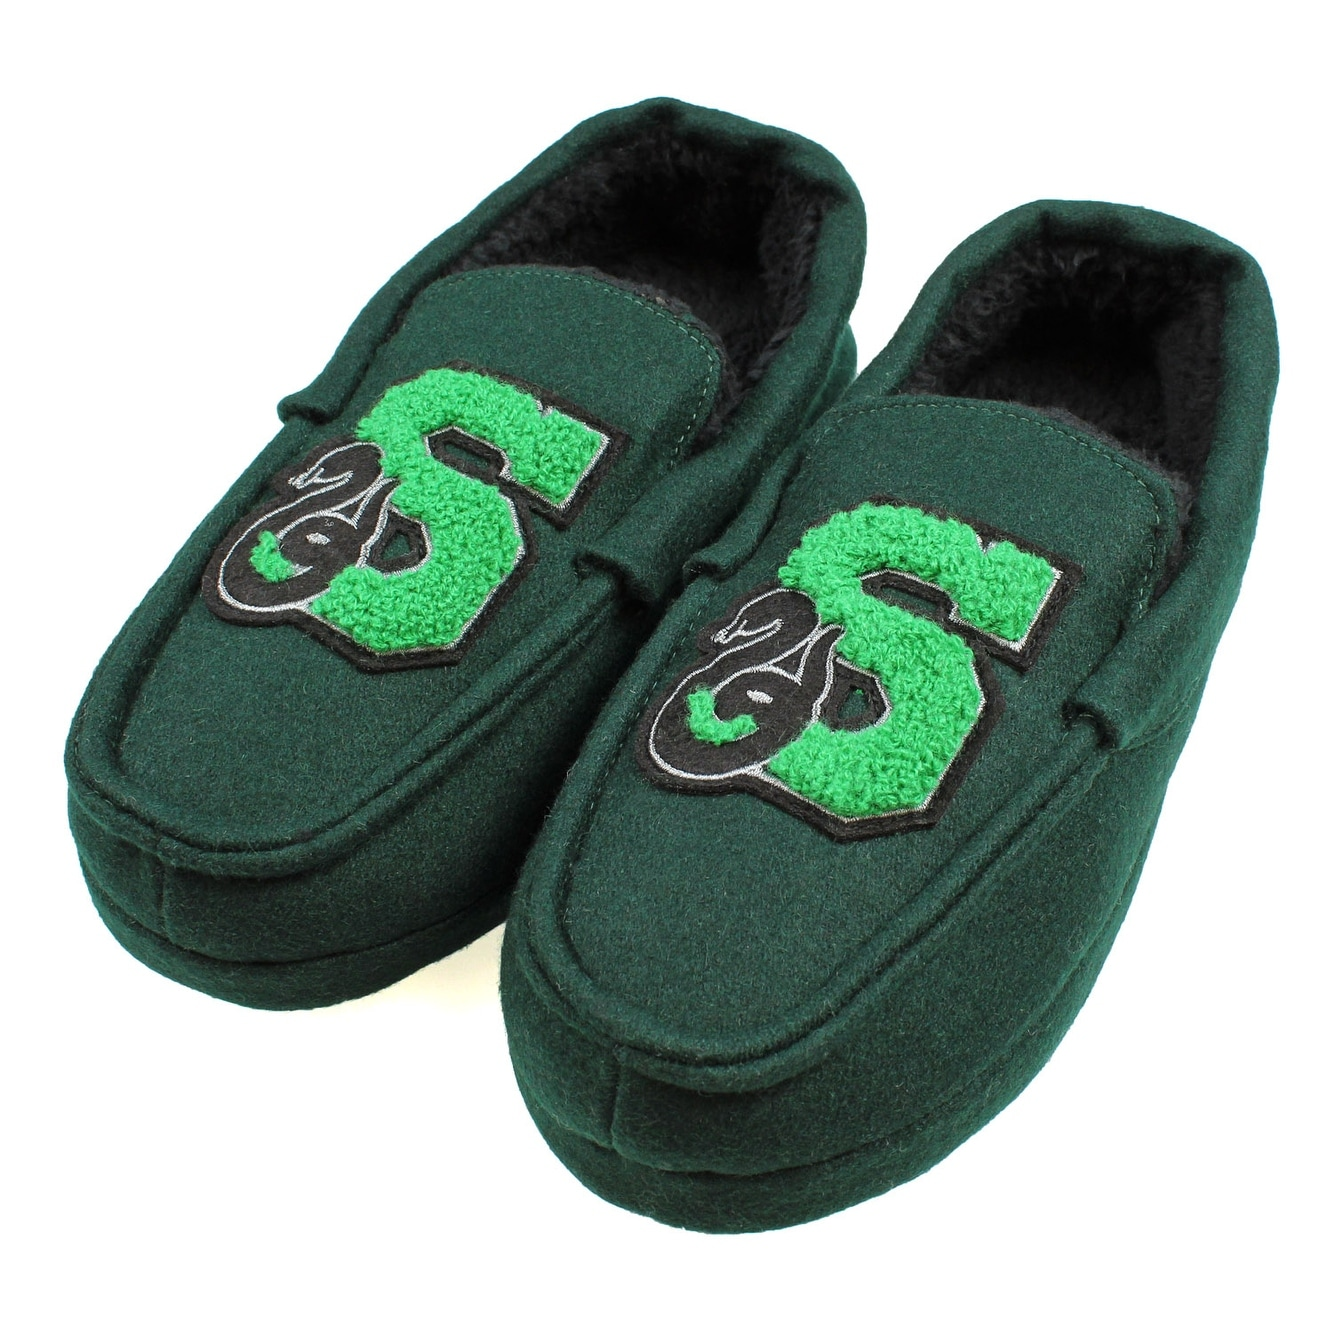 cc87a66a355 Shop Harry Potter Men s Slytherin House Moccasin Slippers - Free ...